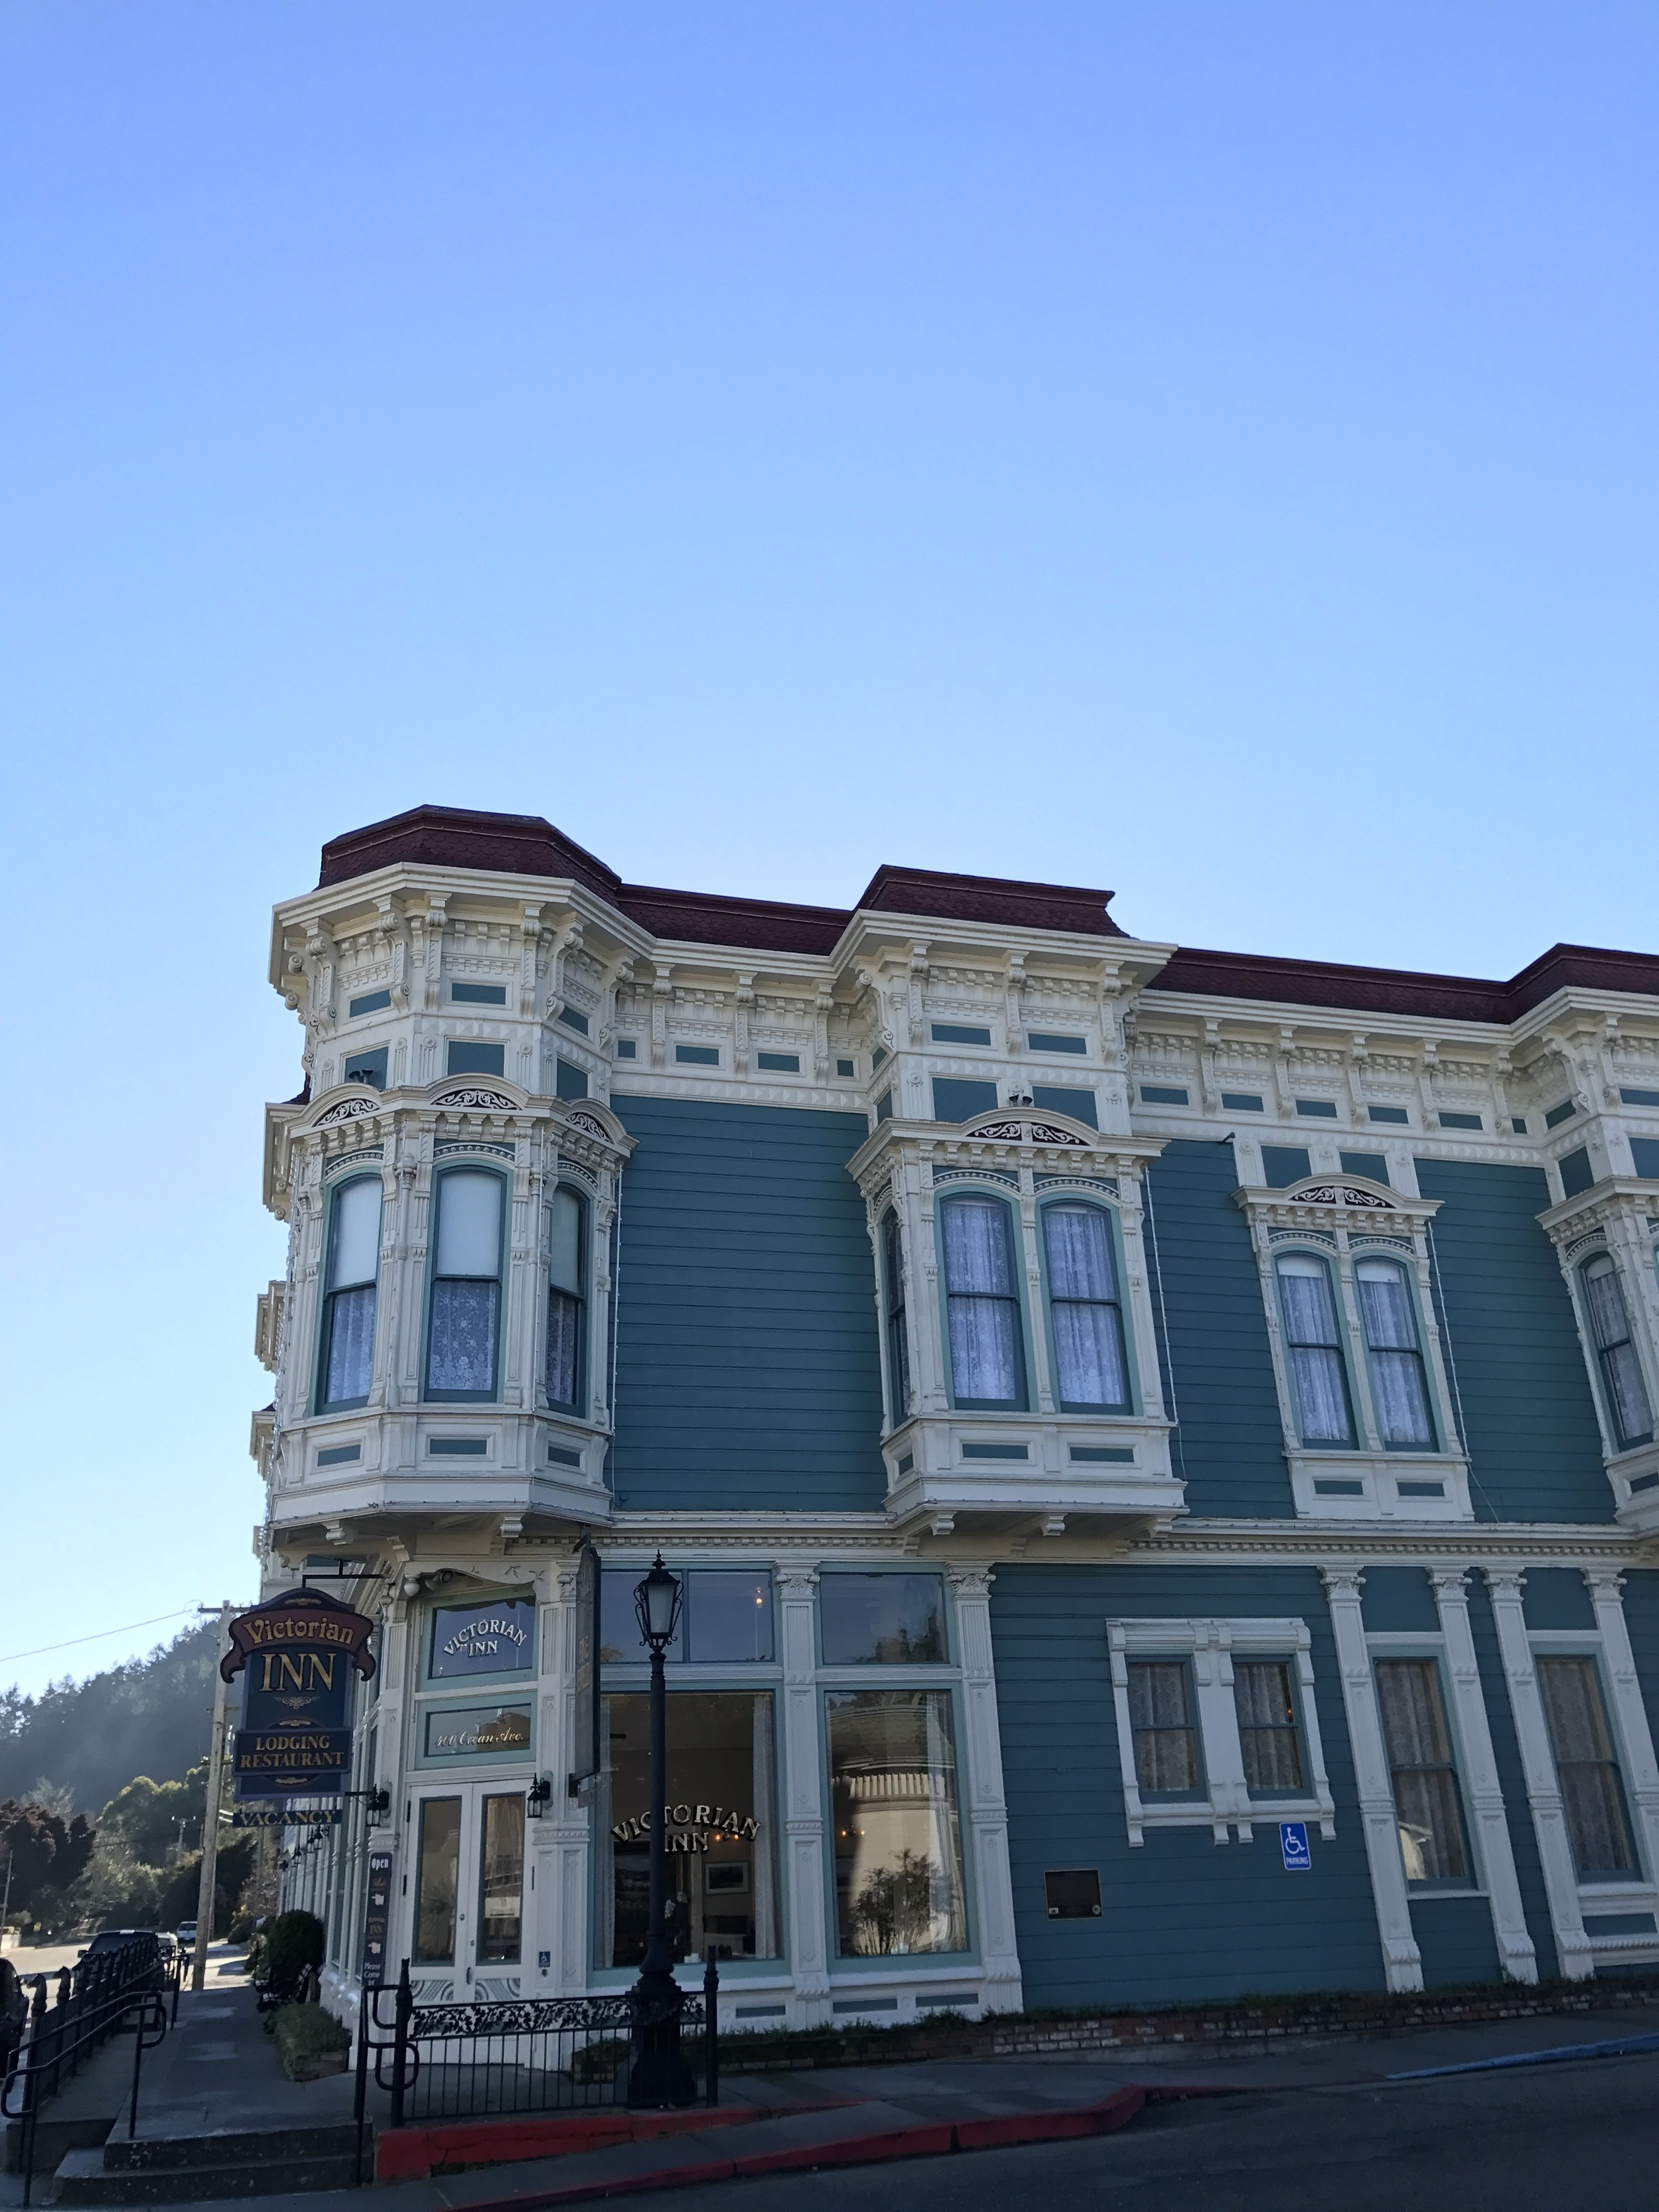 Victorian Inn in Ferndale, California